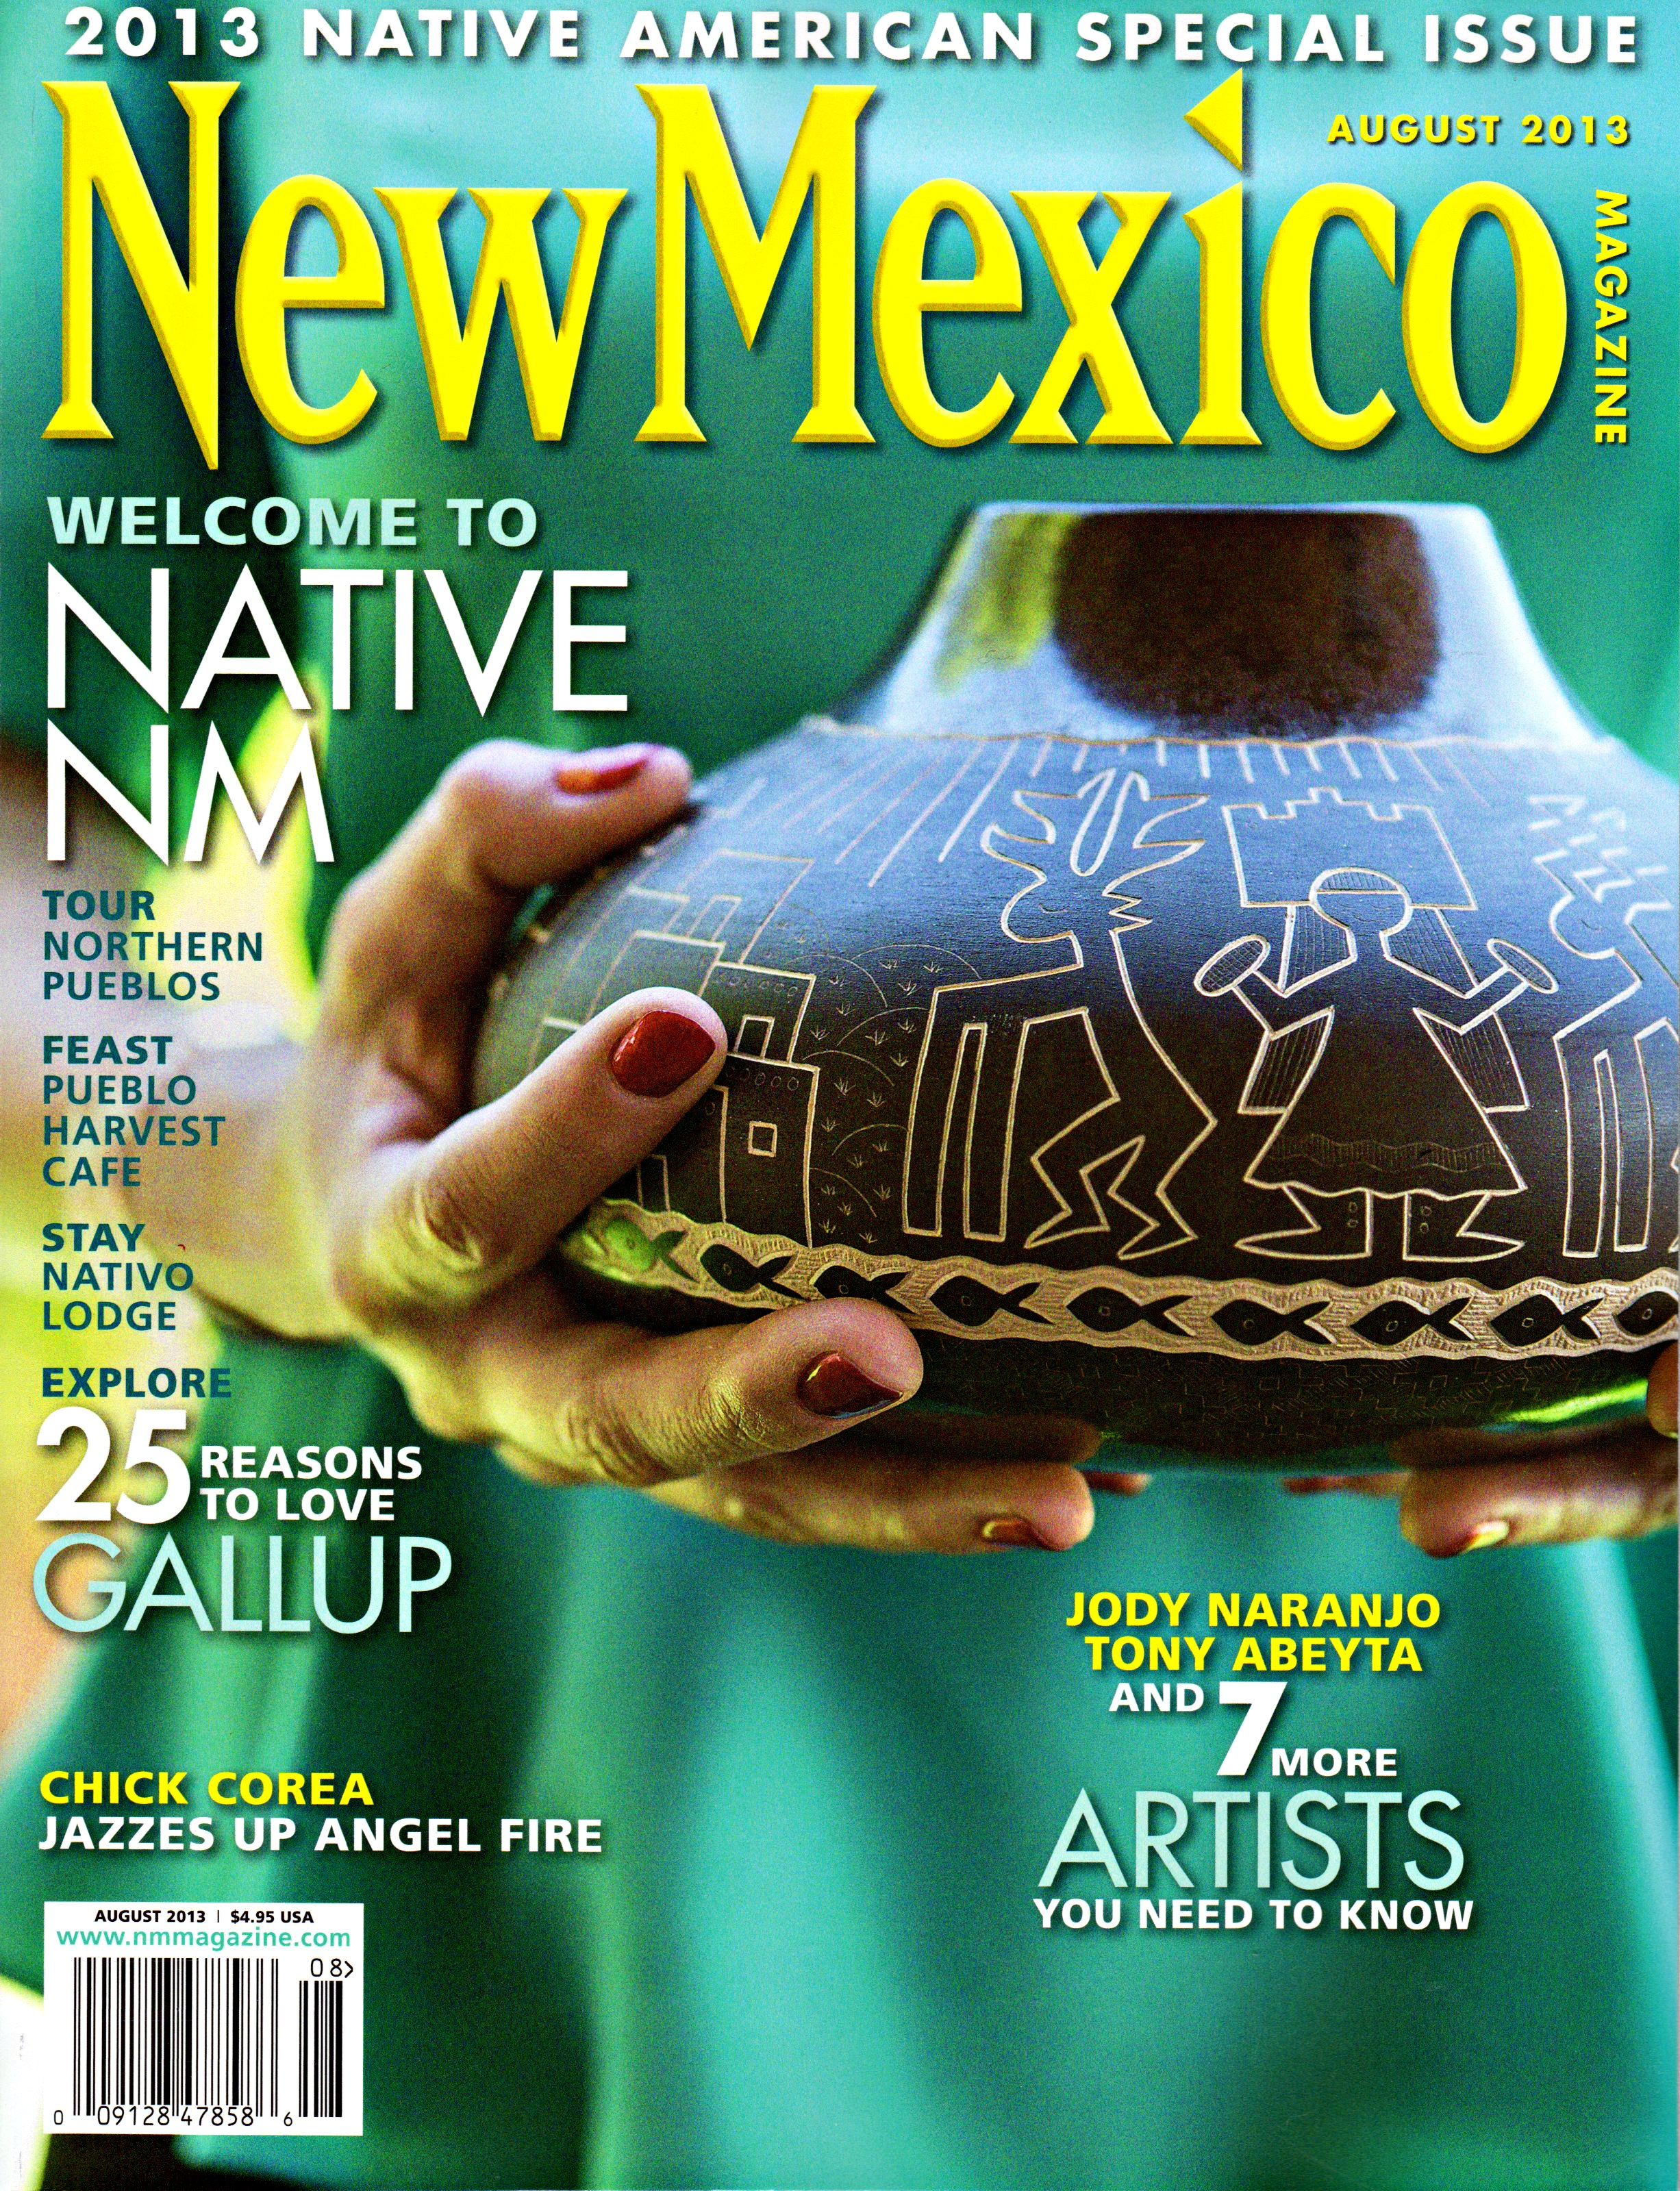 New Mexico Magazine August 2013 Cover.jpg